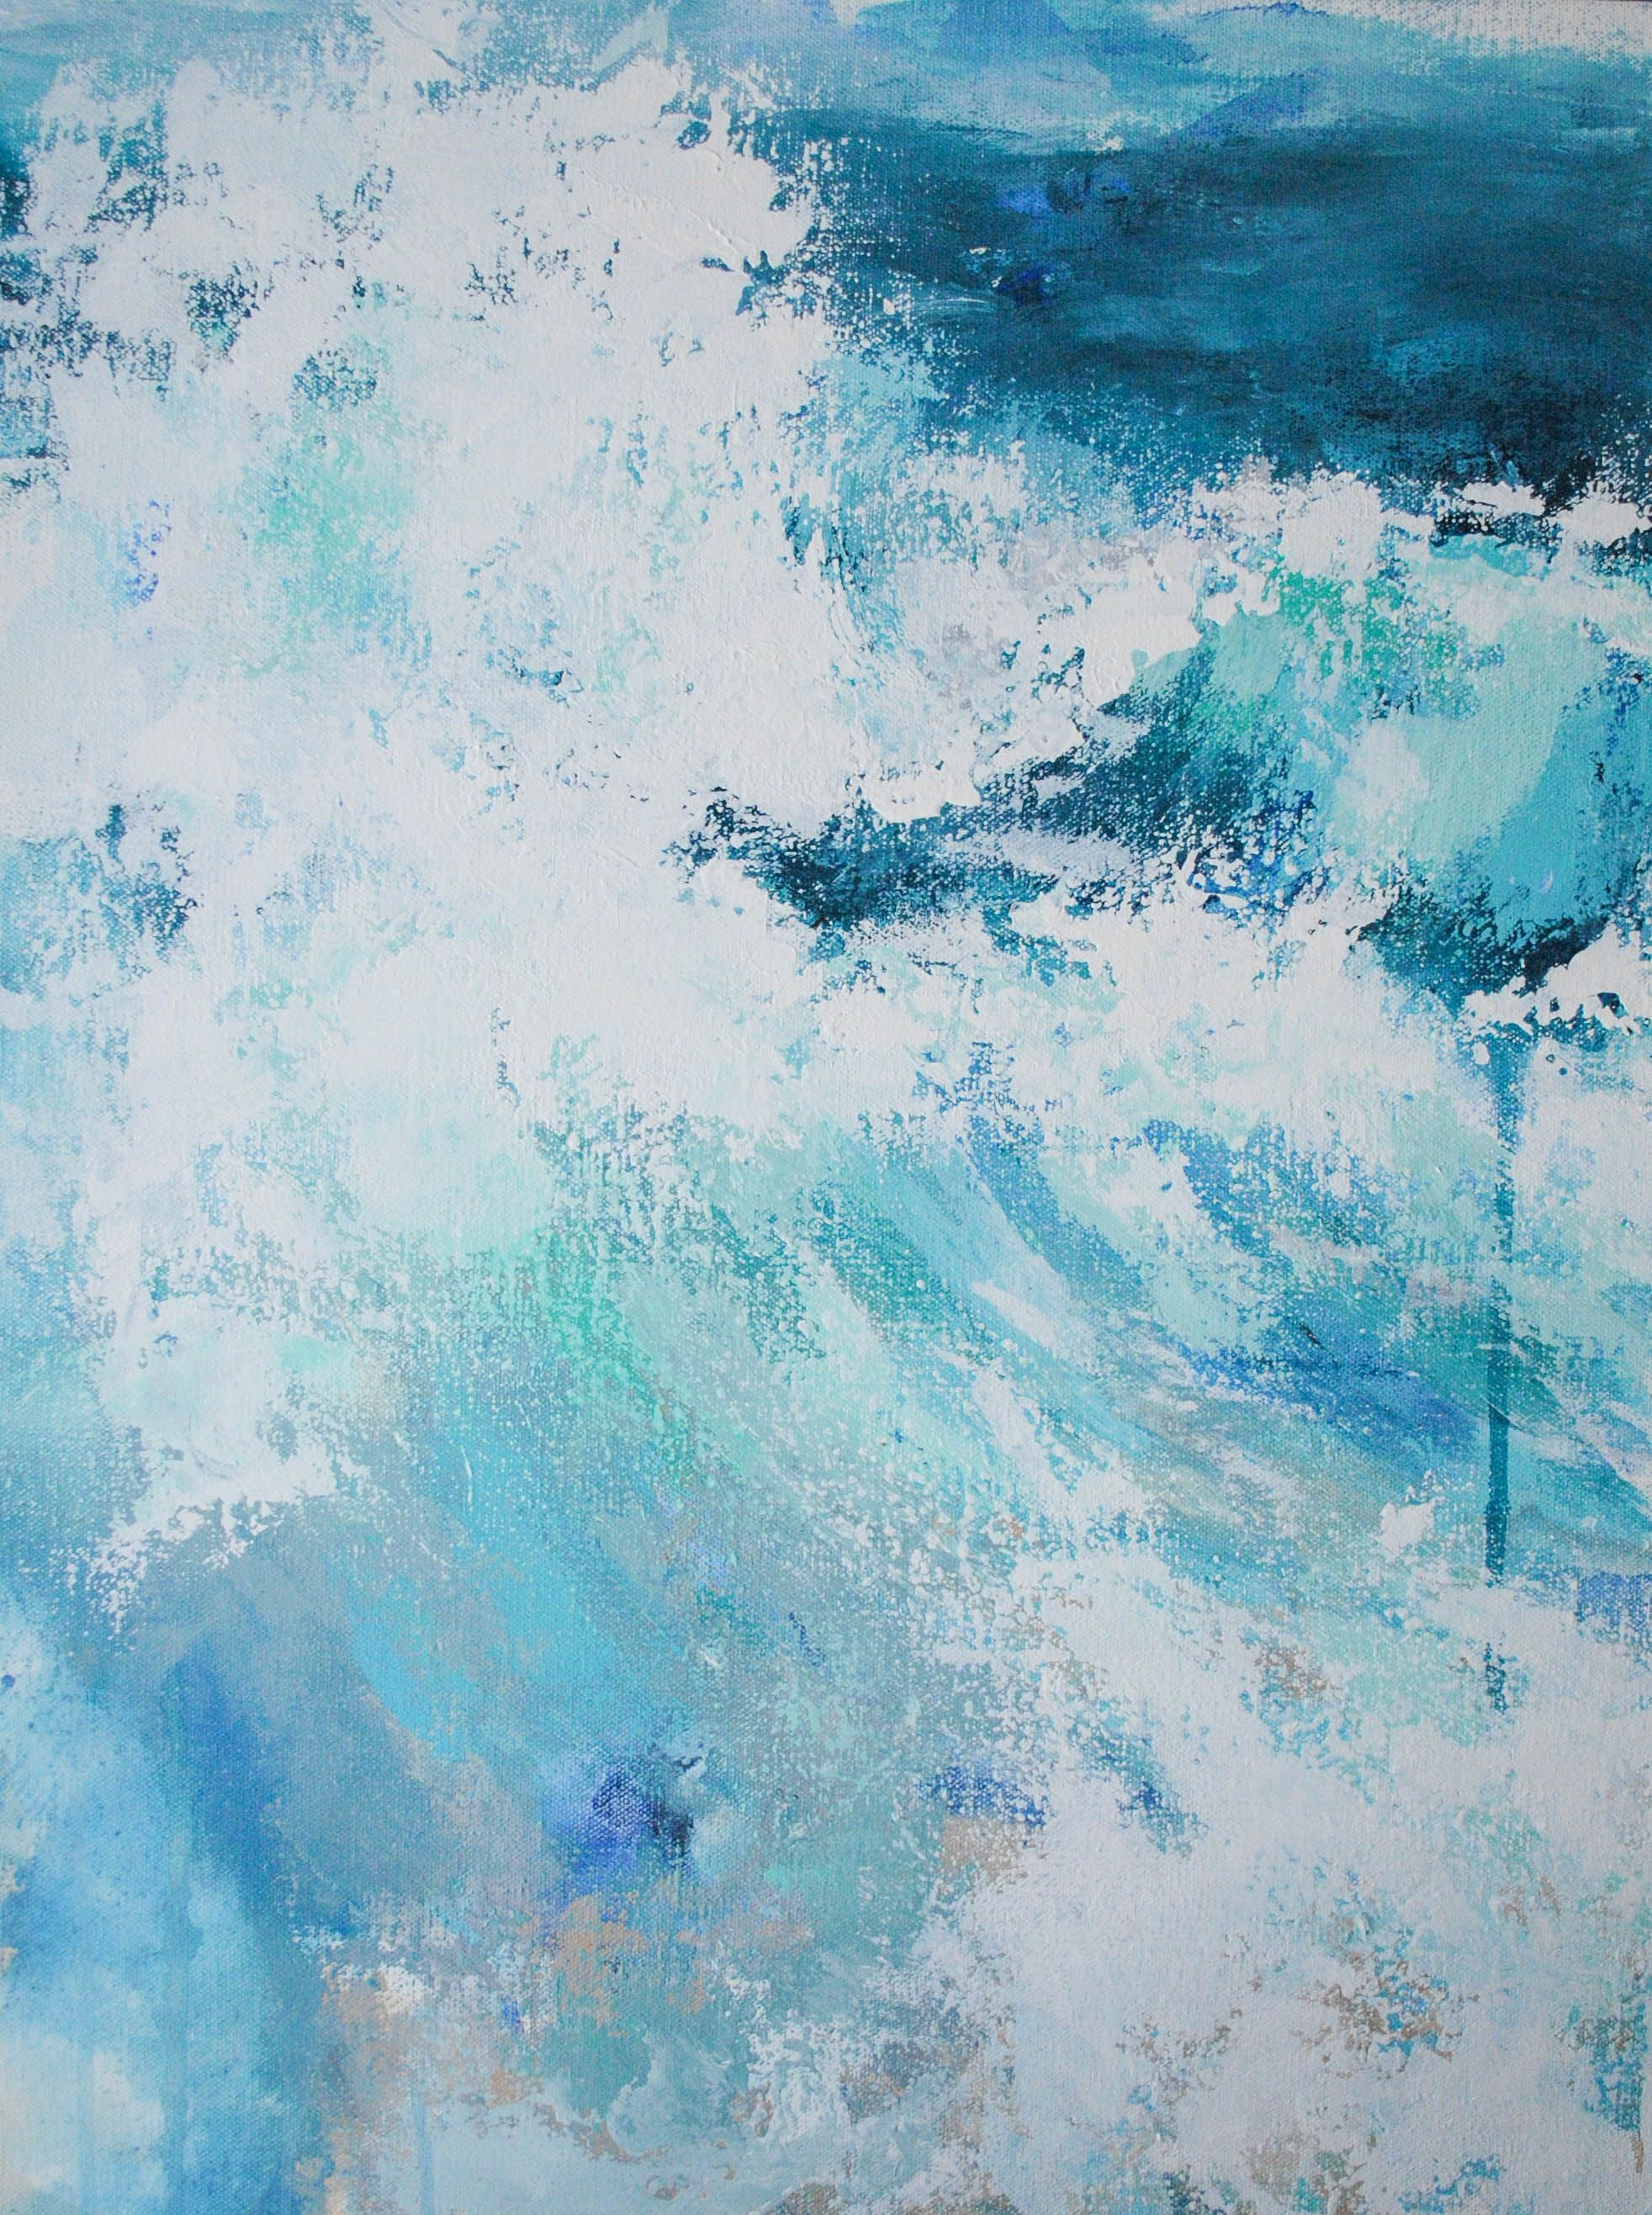 In High Tides Abstract Ocean Painting Abstract Ocean Painting